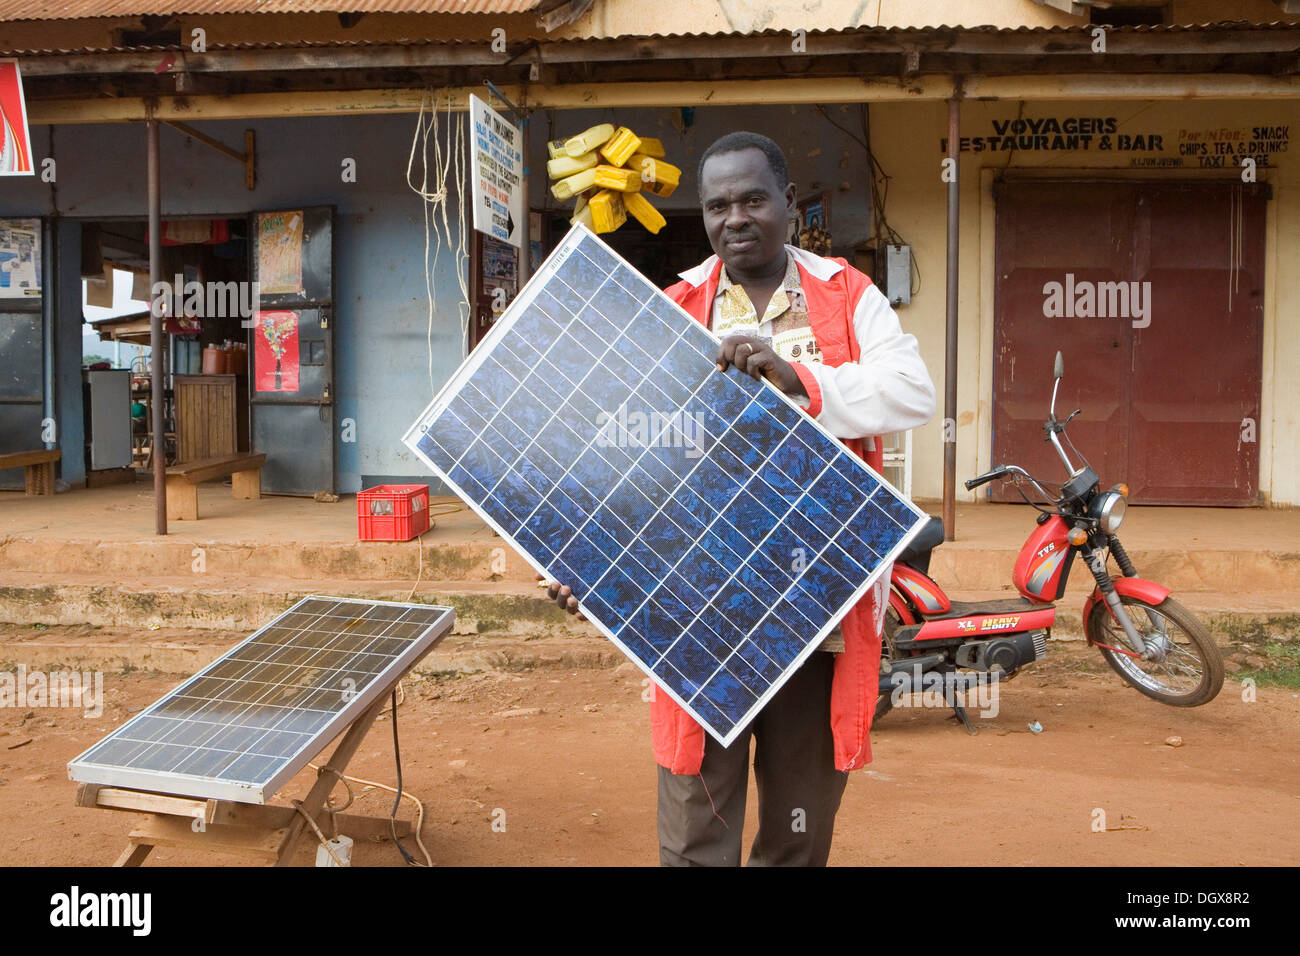 Mr. Tinkasimire, owner of an electrical shop, offering products like Premier Modul solar panels, Masindi, Uganda, Stock Photo